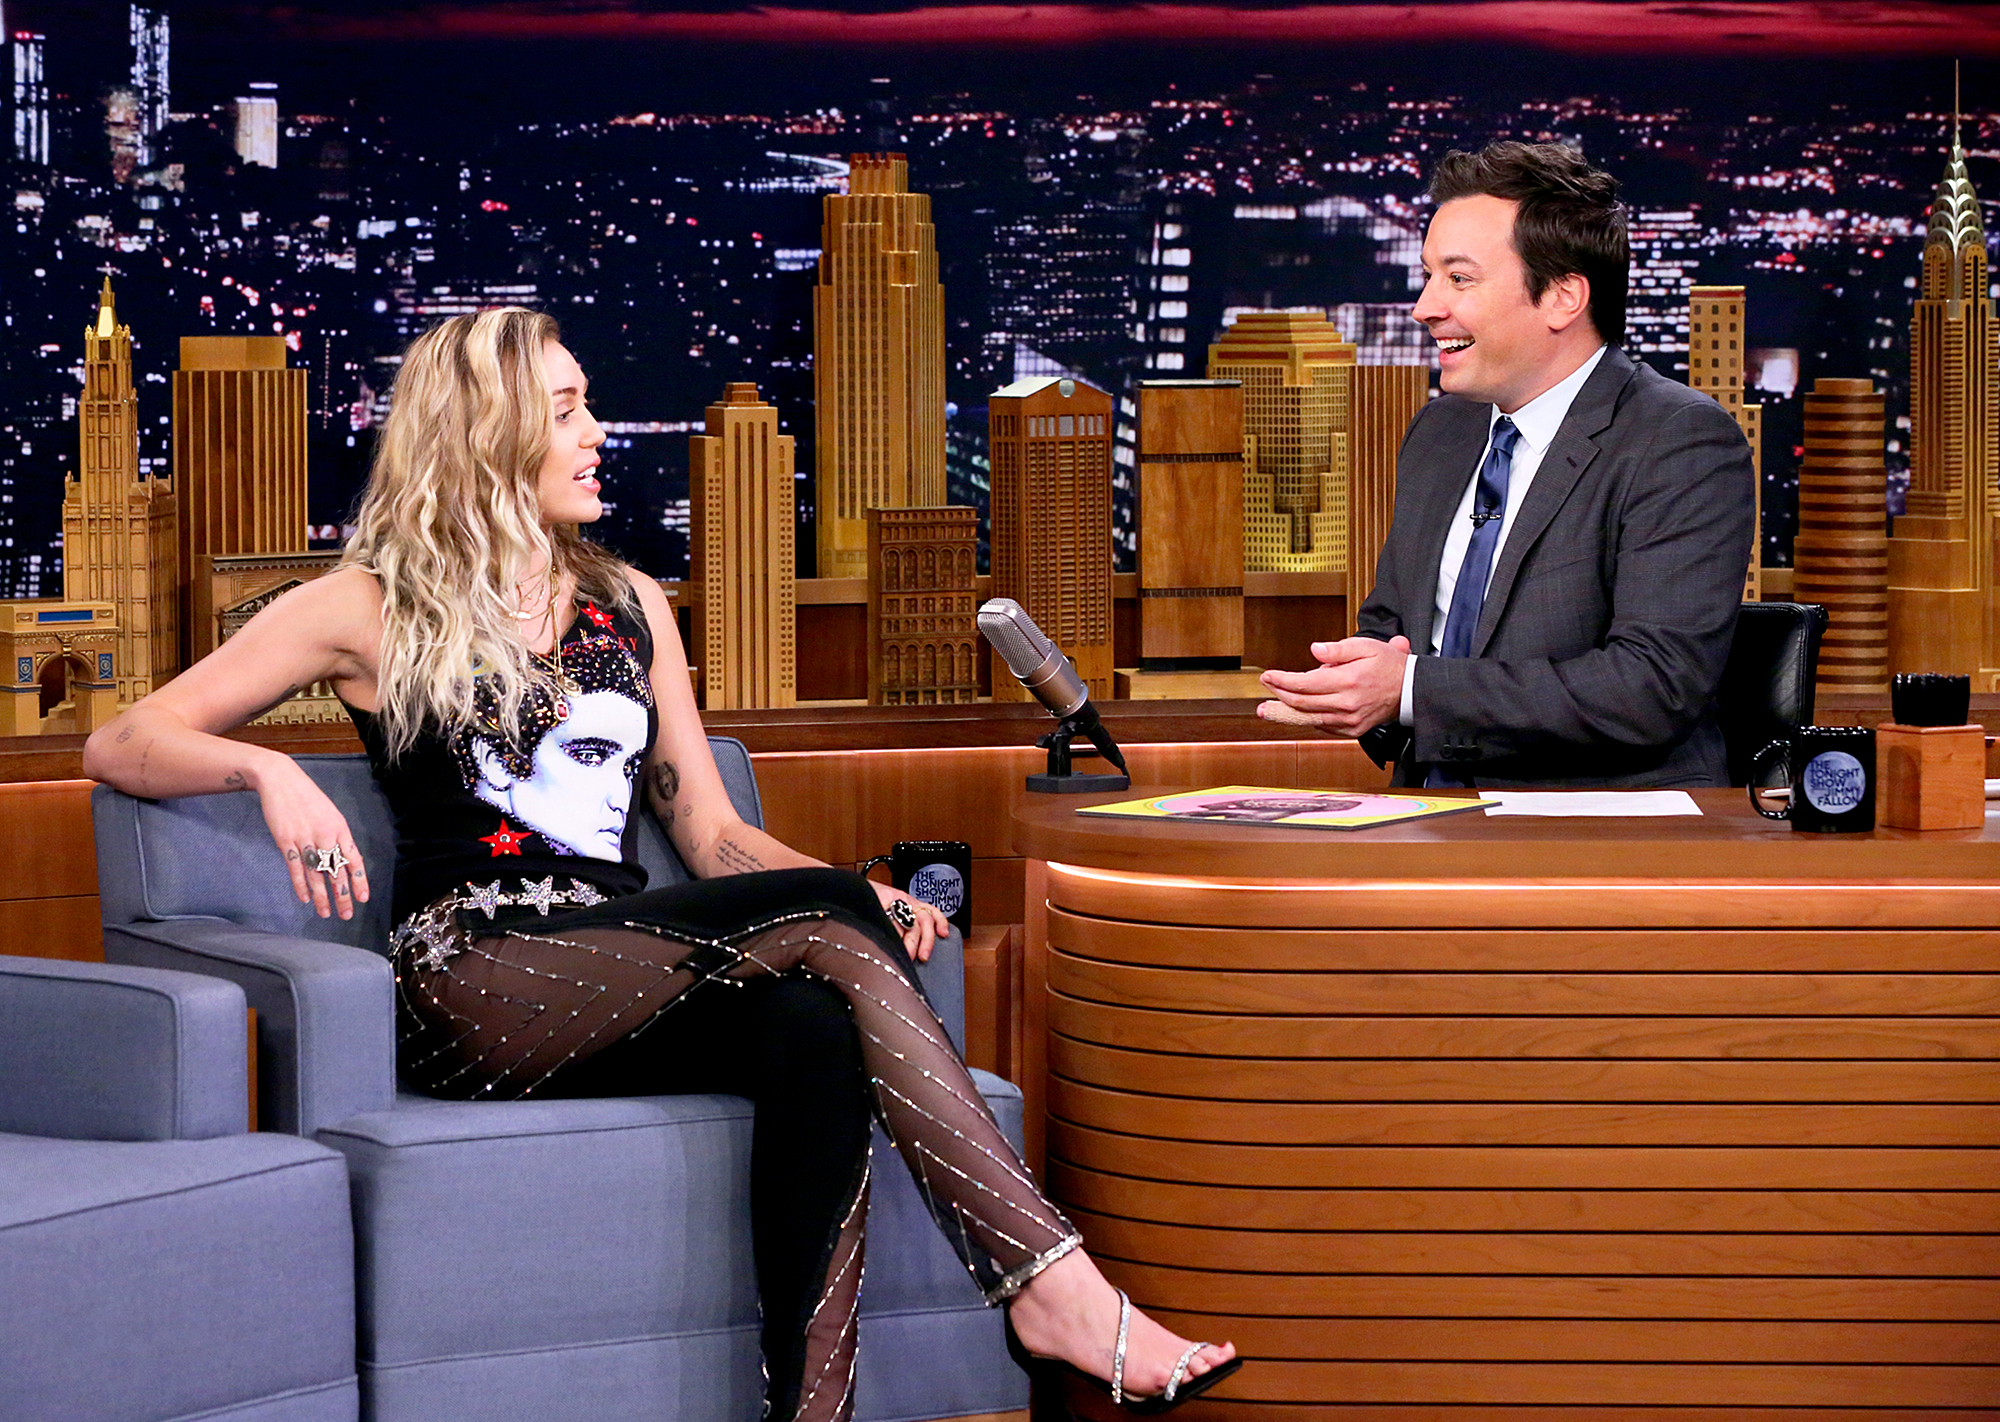 Miley Cyrus Tonight Show starring Jimmy Fallon